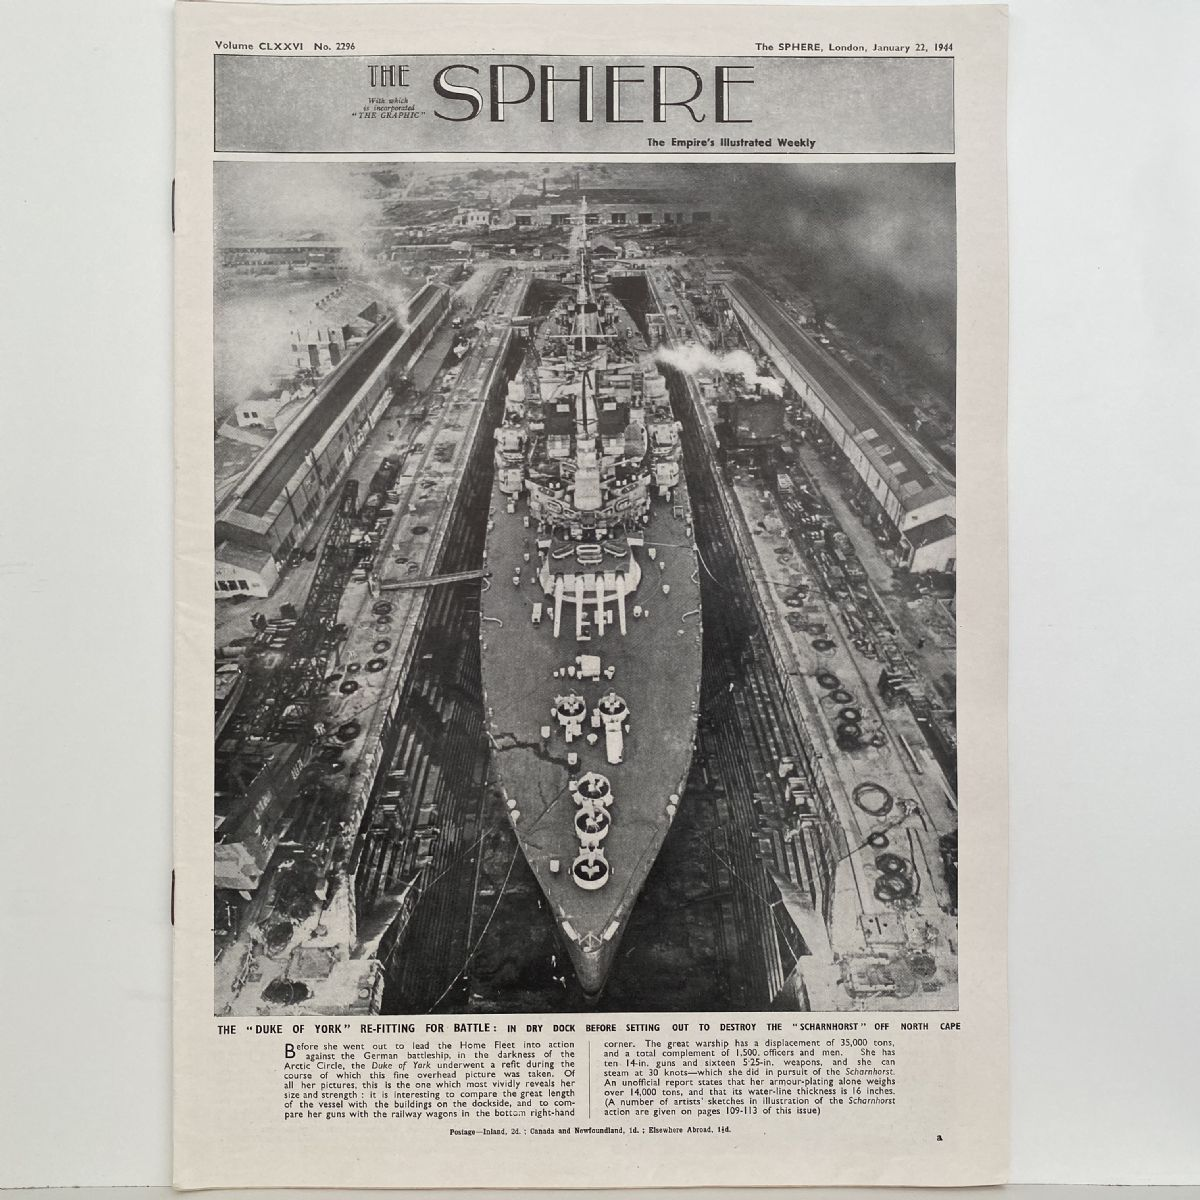 THE SPHERE The Empire's Illustrated Weekly. January 22,1944. No. 2296